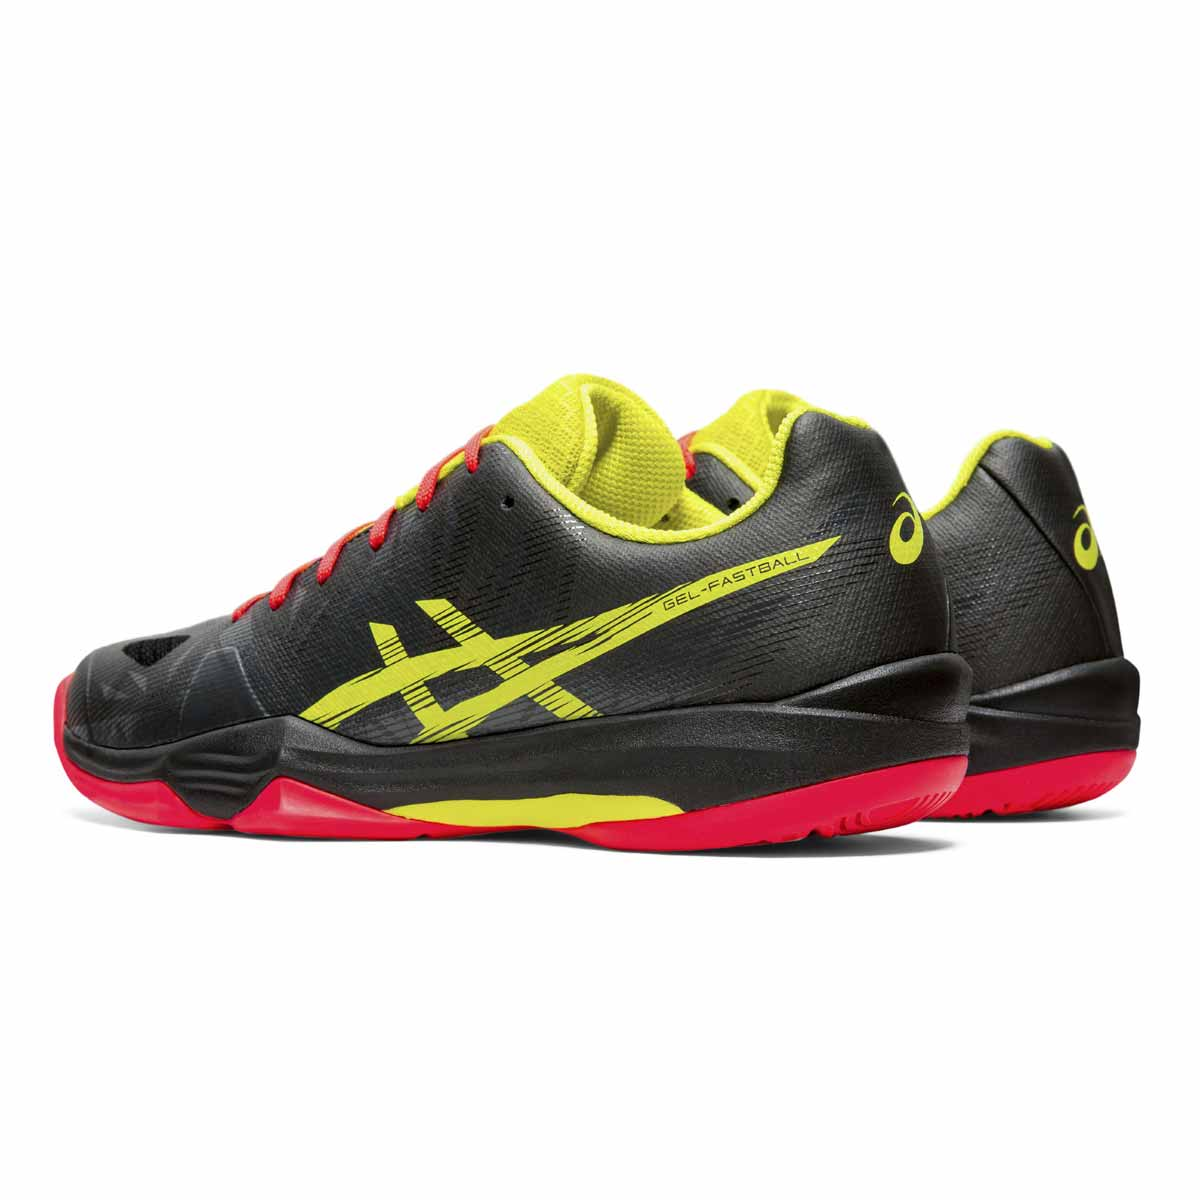 ASICS GEL-FASTBALL 3 LADY - Duo